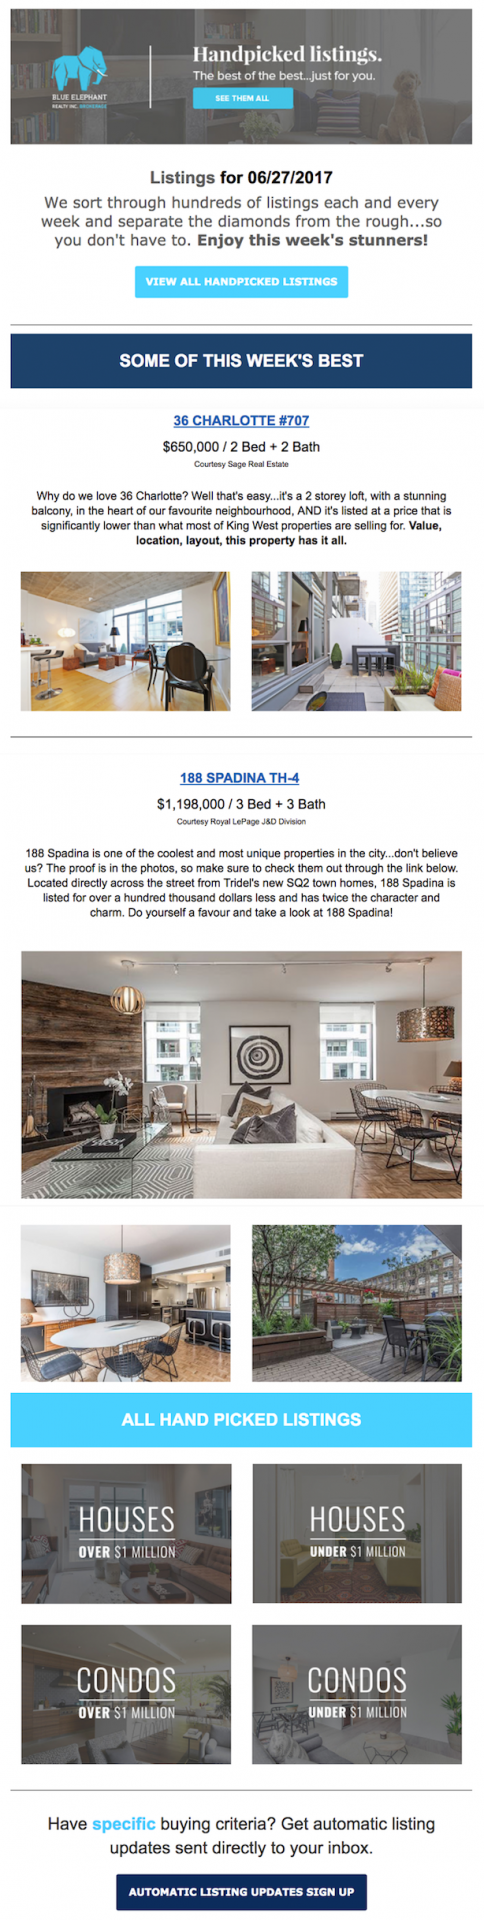 blue elephant realty email newsletter examples